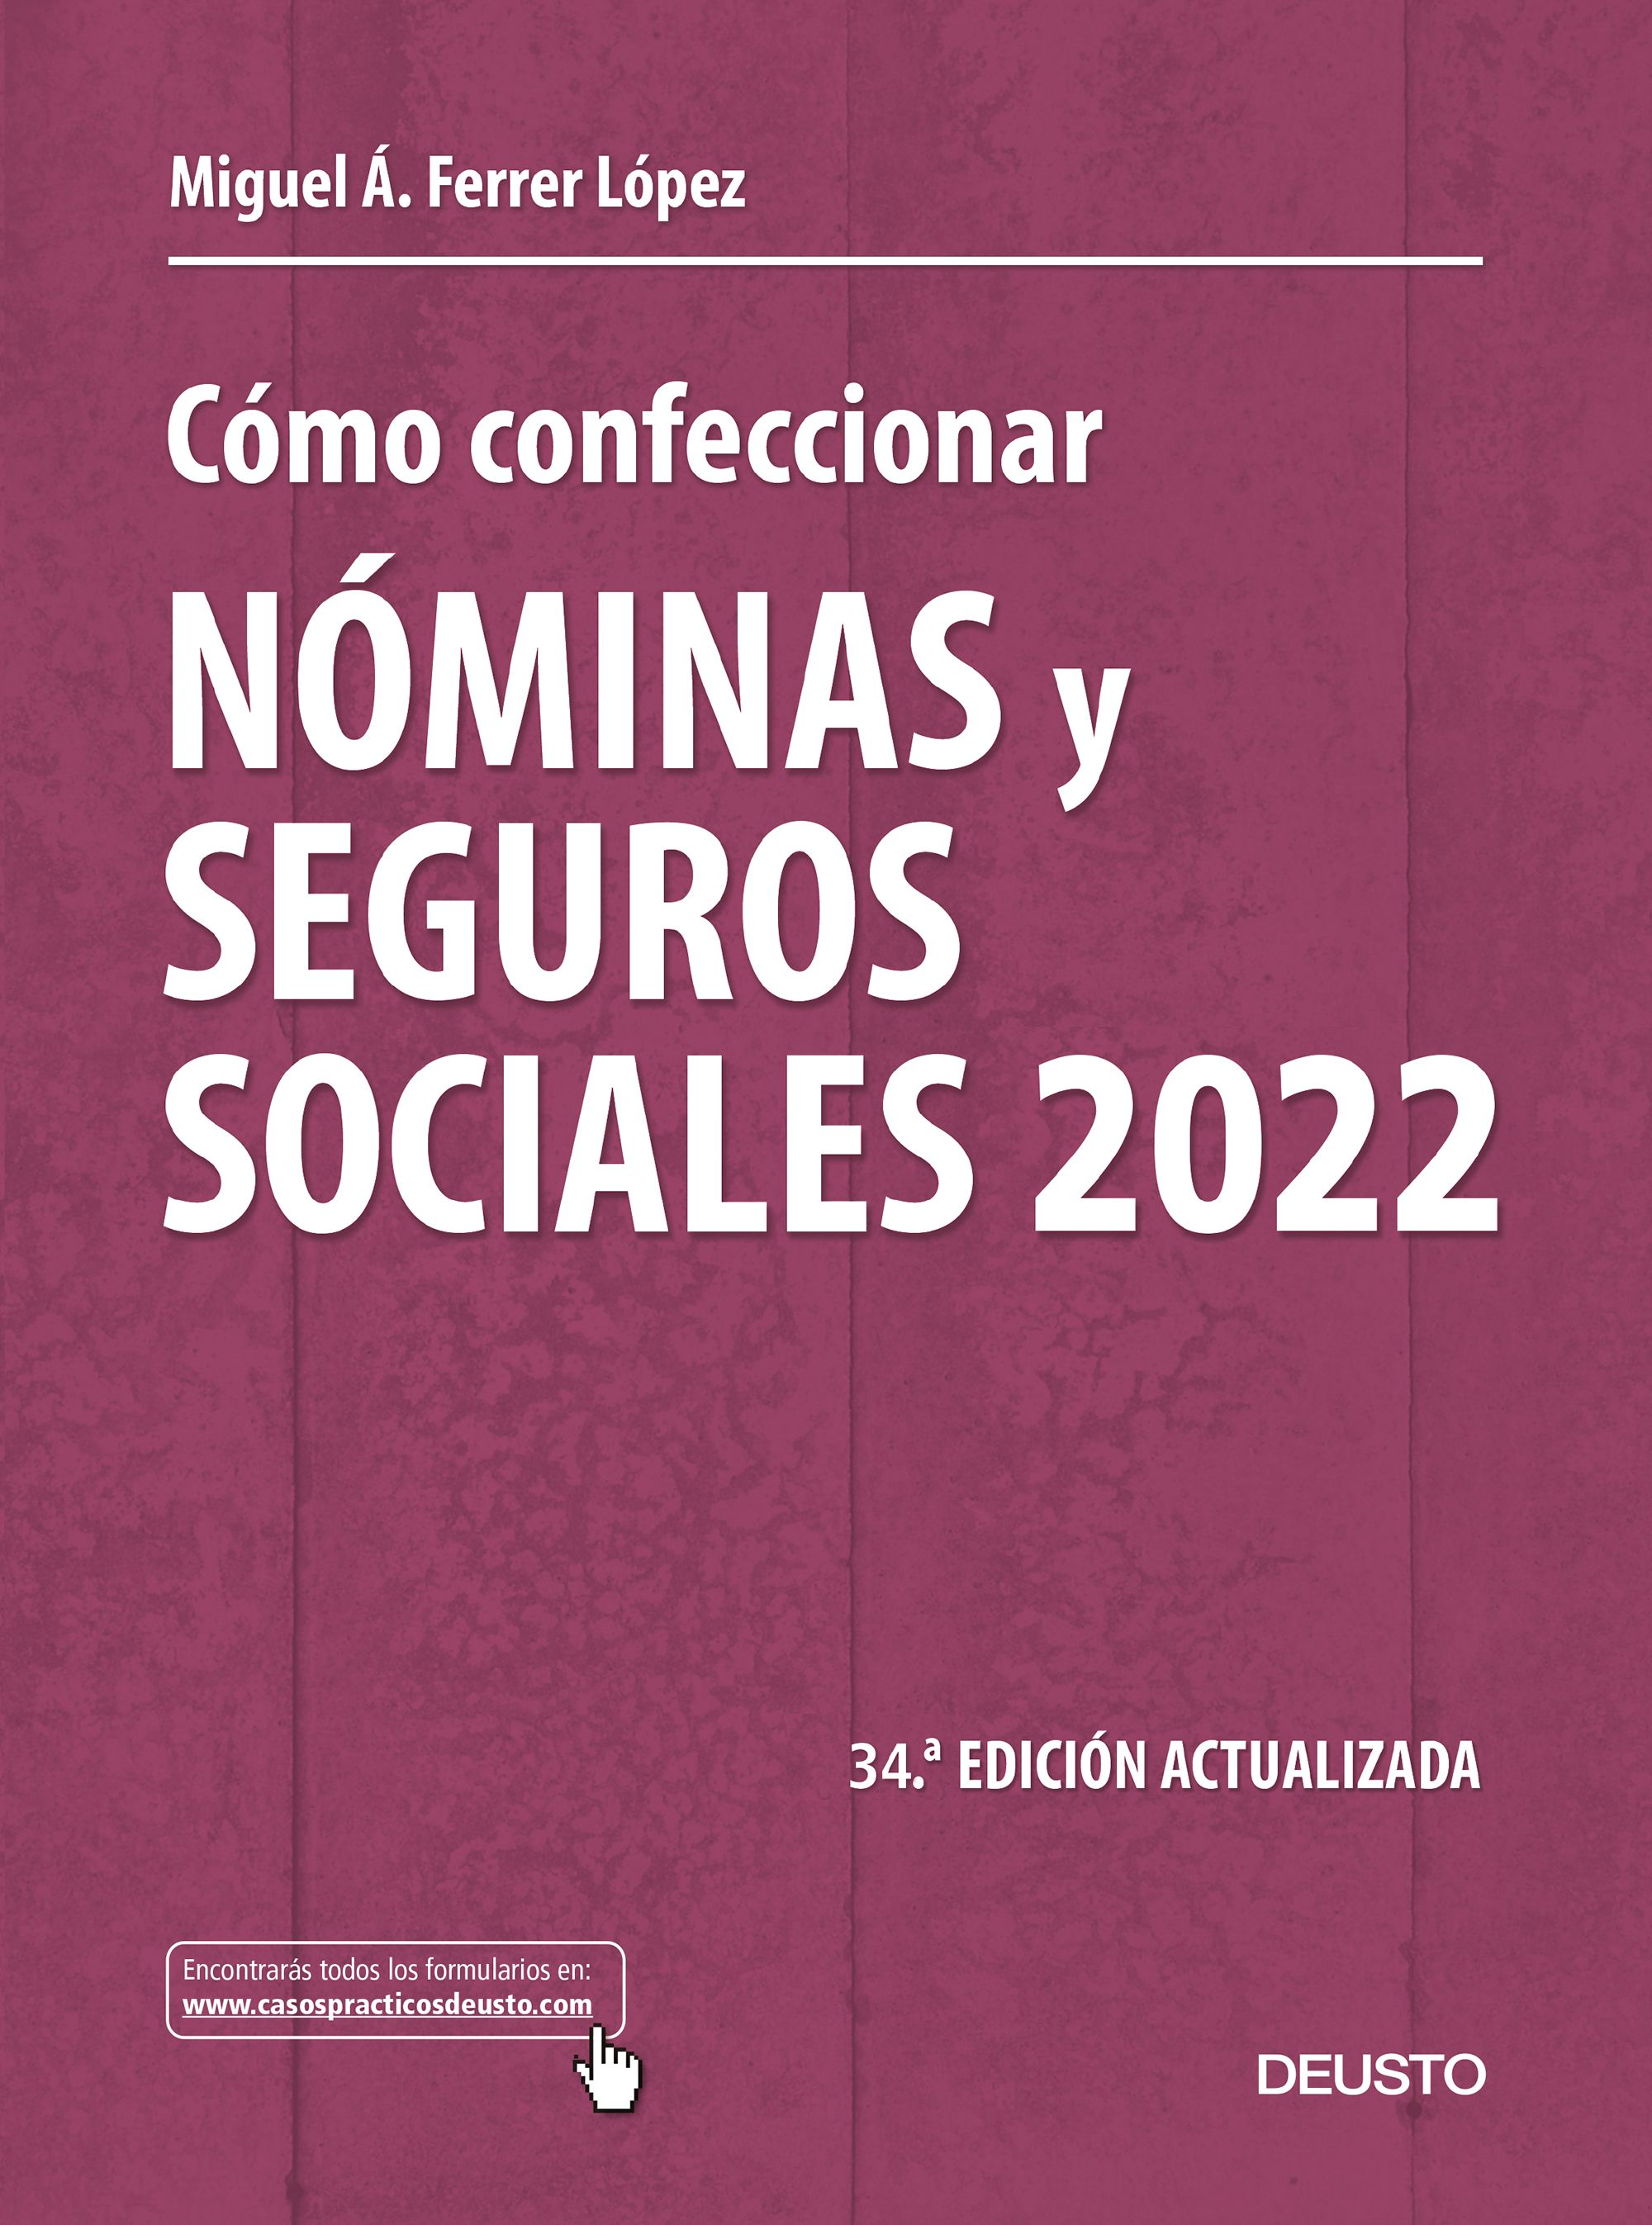 Como confeccionar nominas y seguros sociales